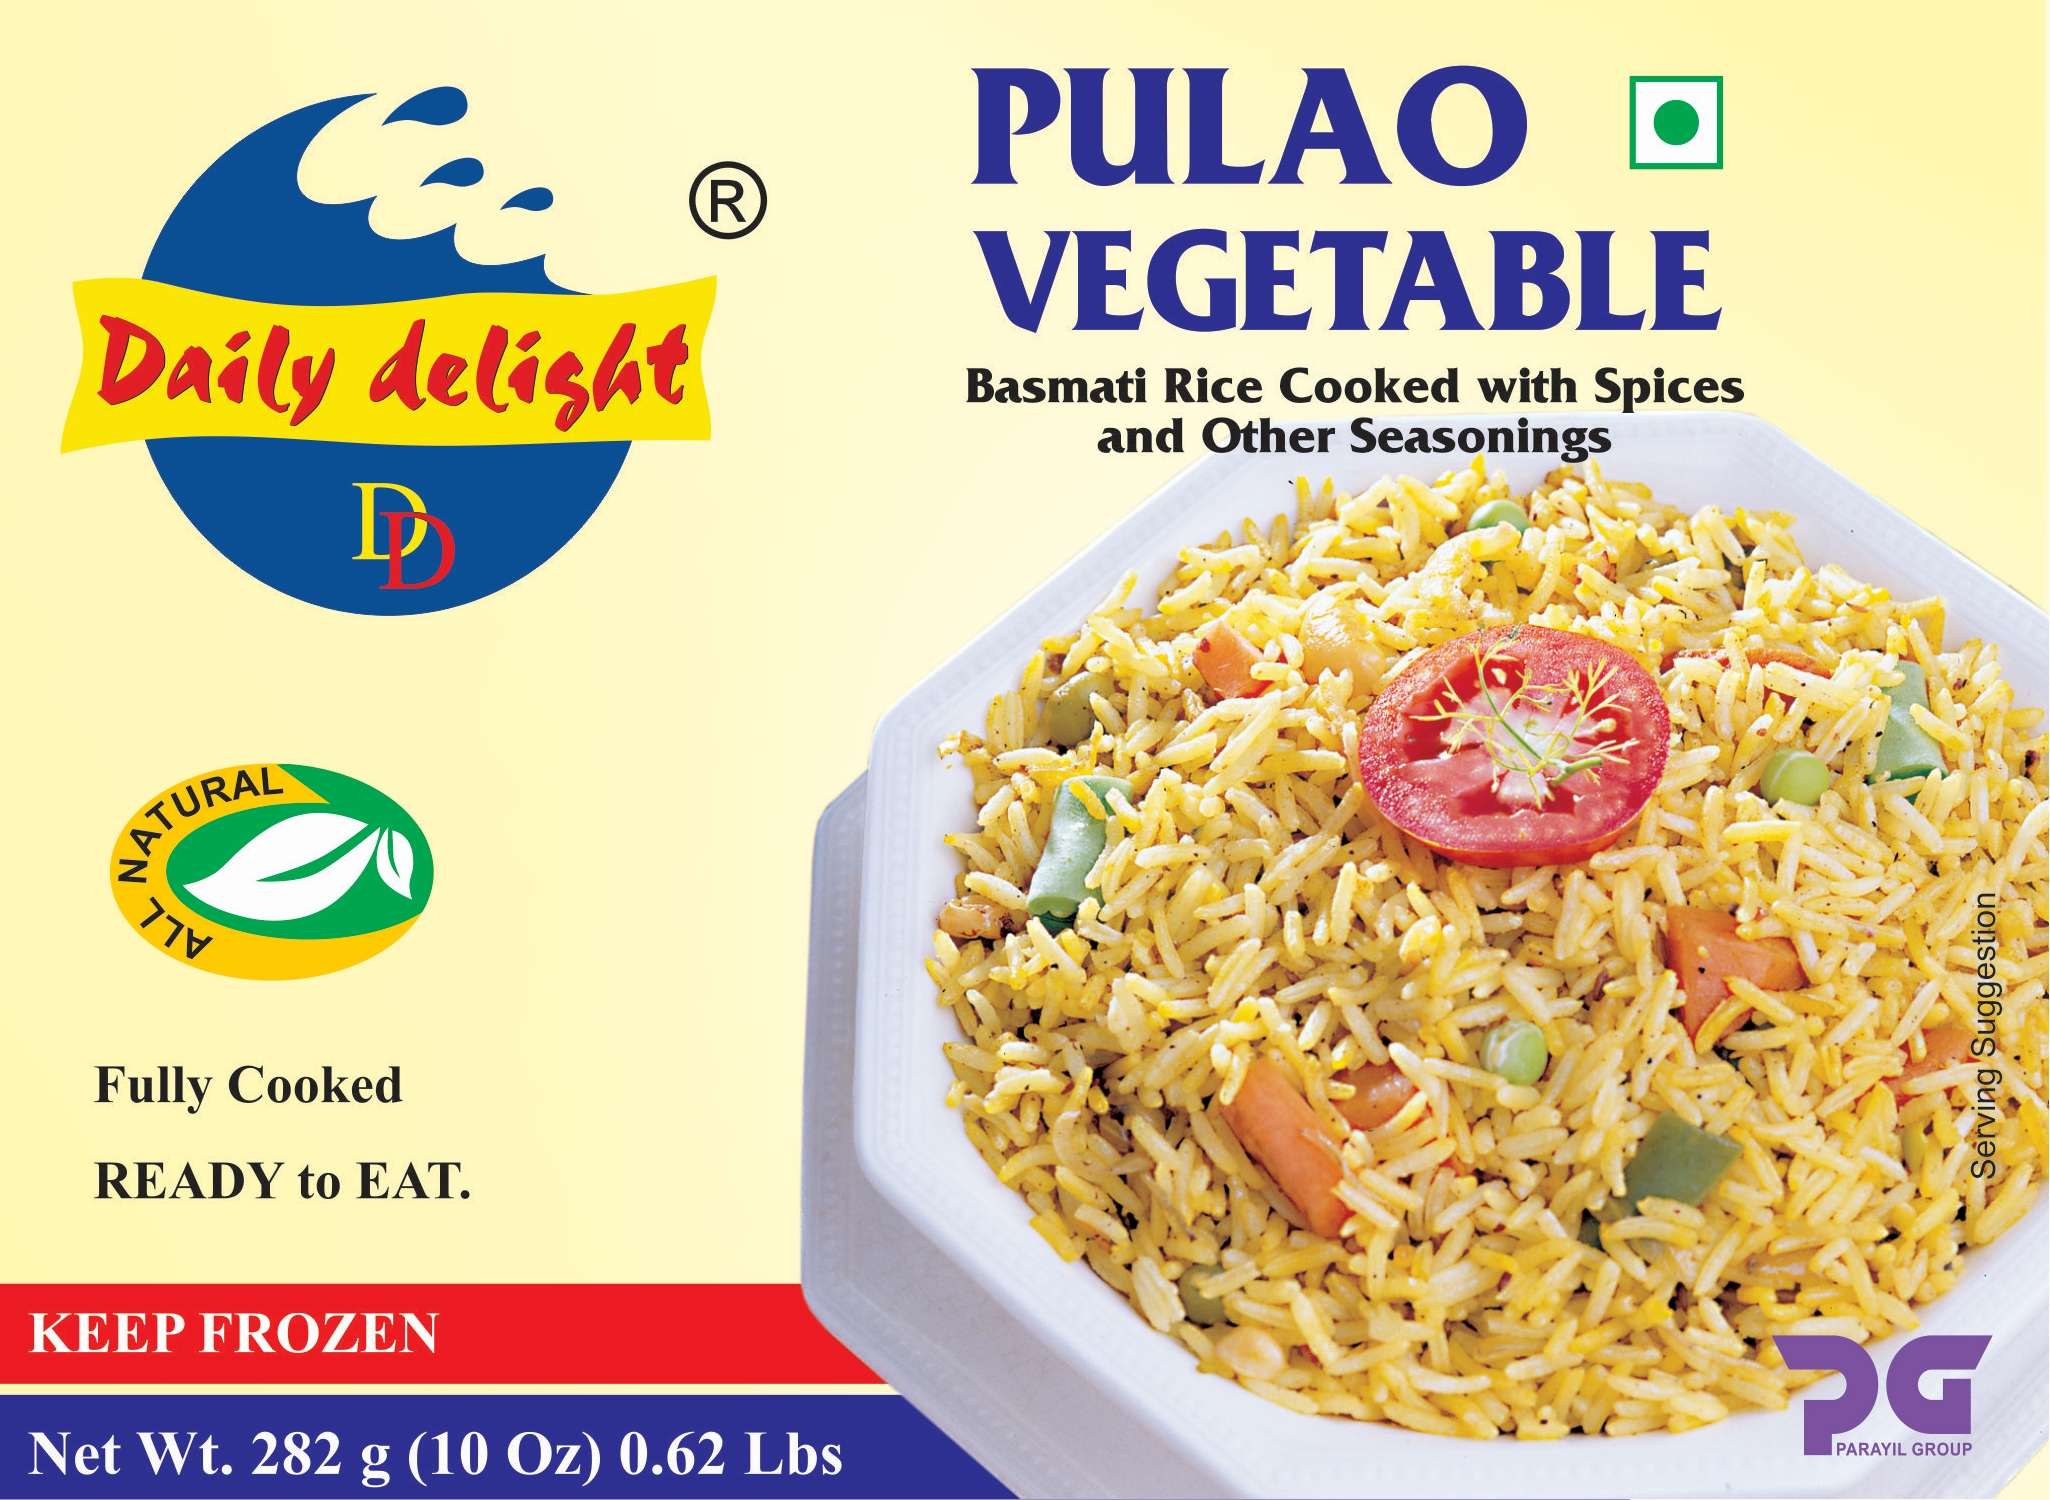 Daily Delight Pulao Vegetable